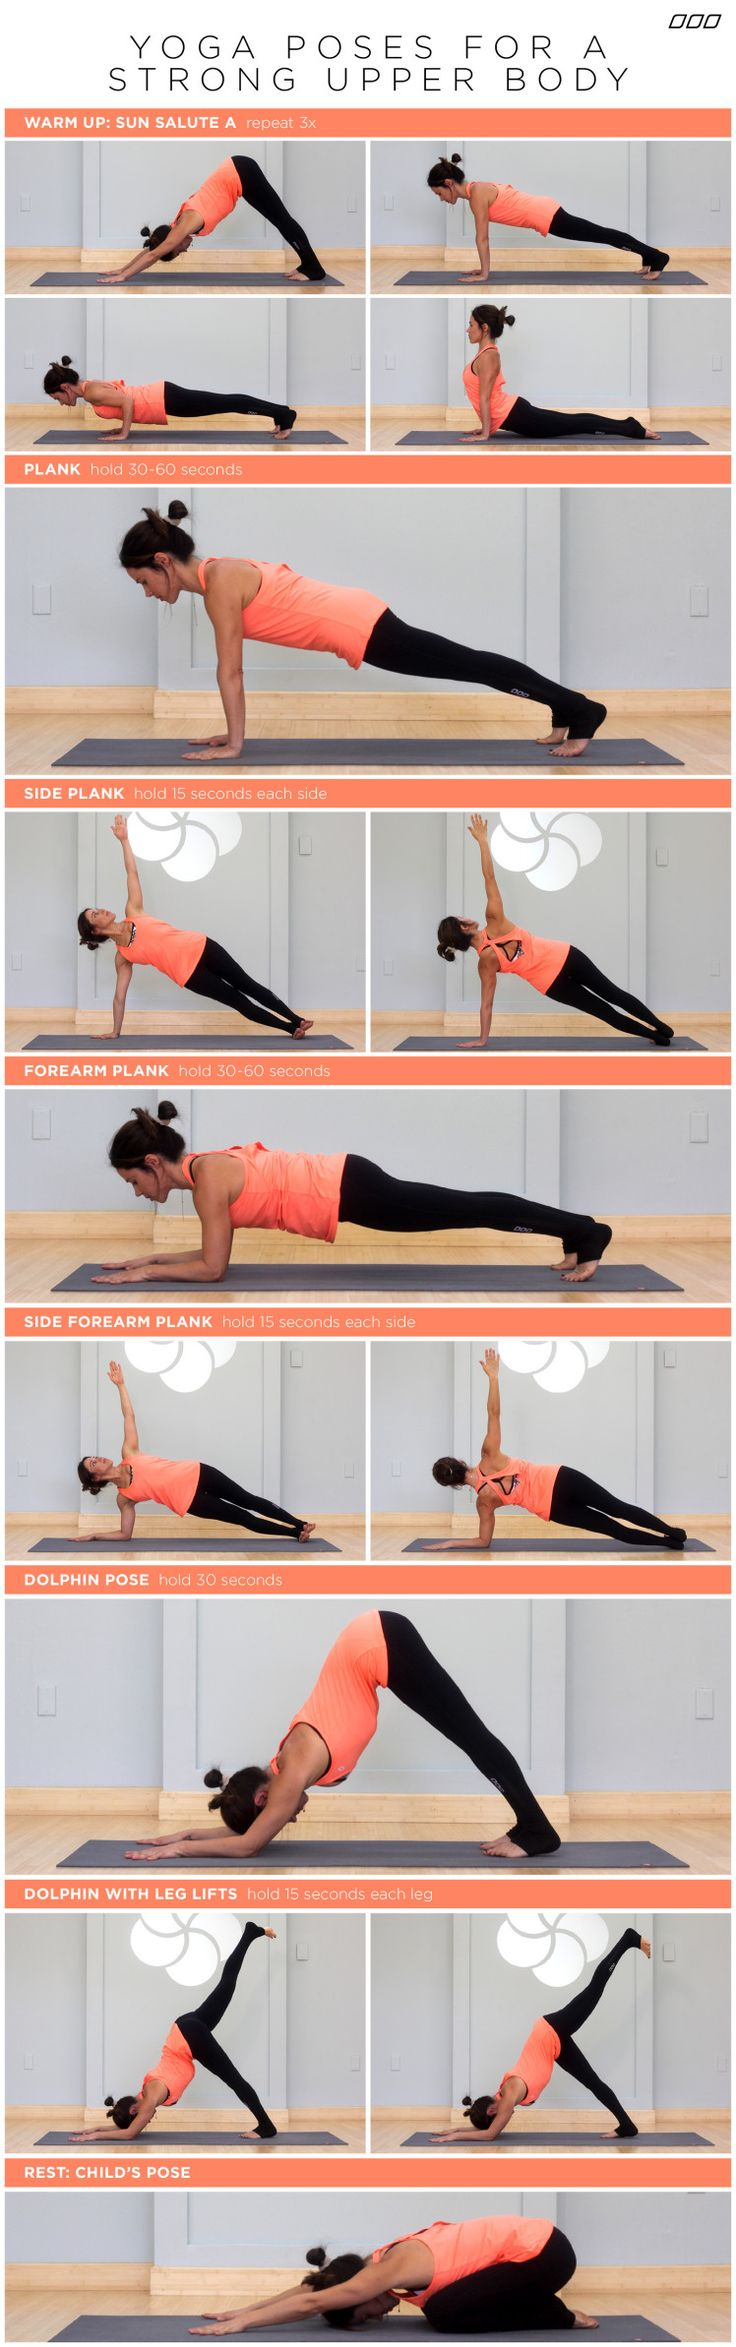 Yoga Poses For A Strong Upper Body. Looking to strengthen and tone your shoulders, upper back and arms but don't have time to head to the gym? Grab your mat and let's go!